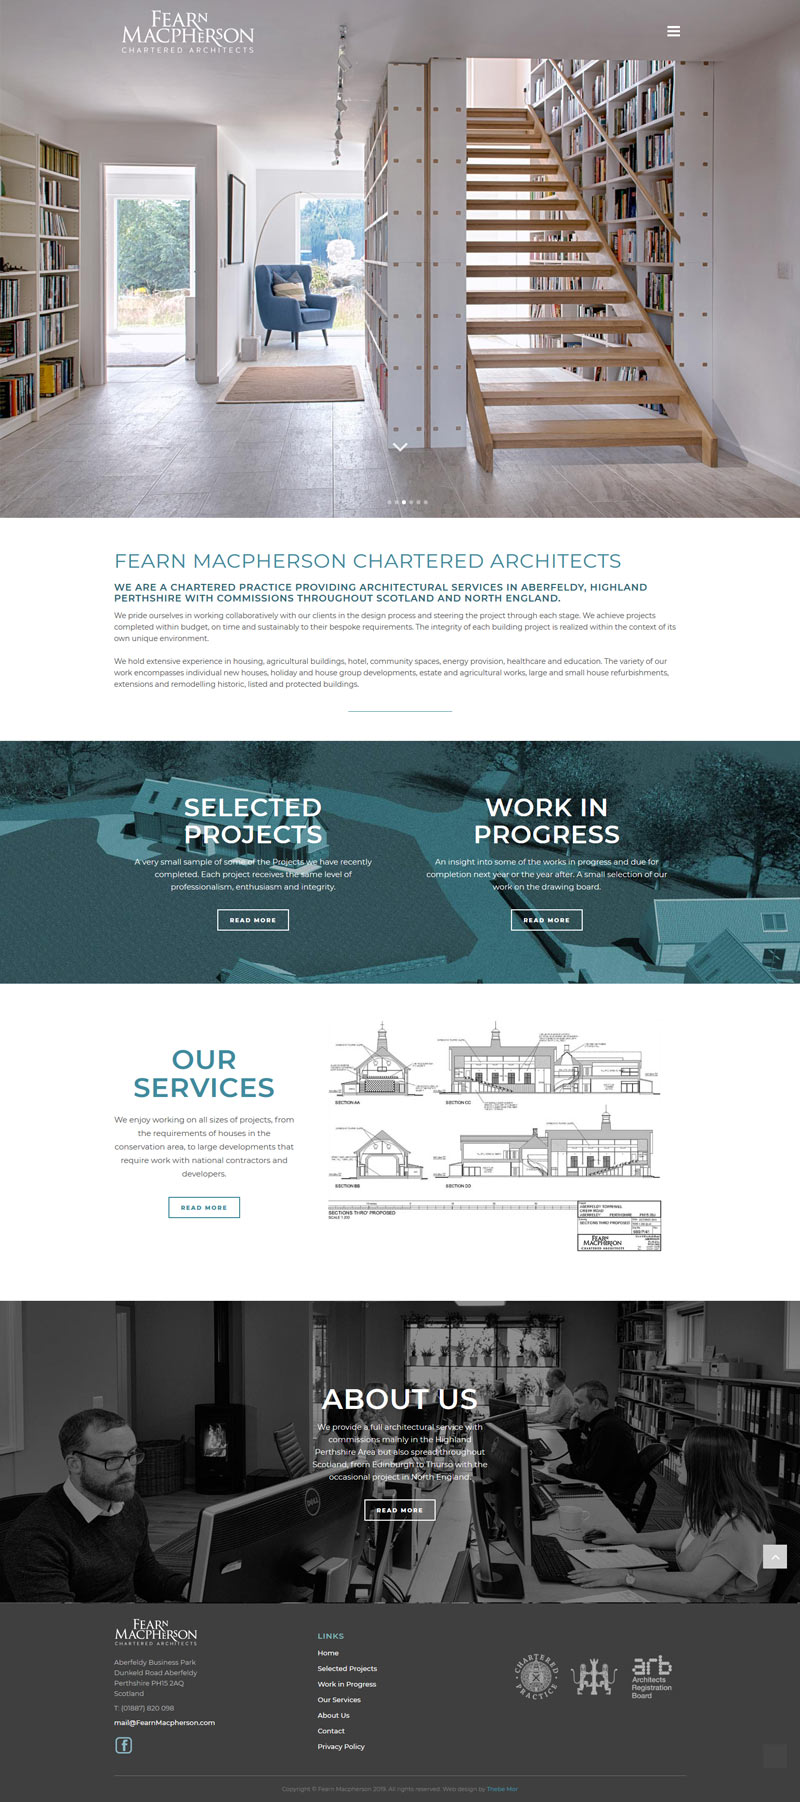 Fearn Macpherson Chartered Architects